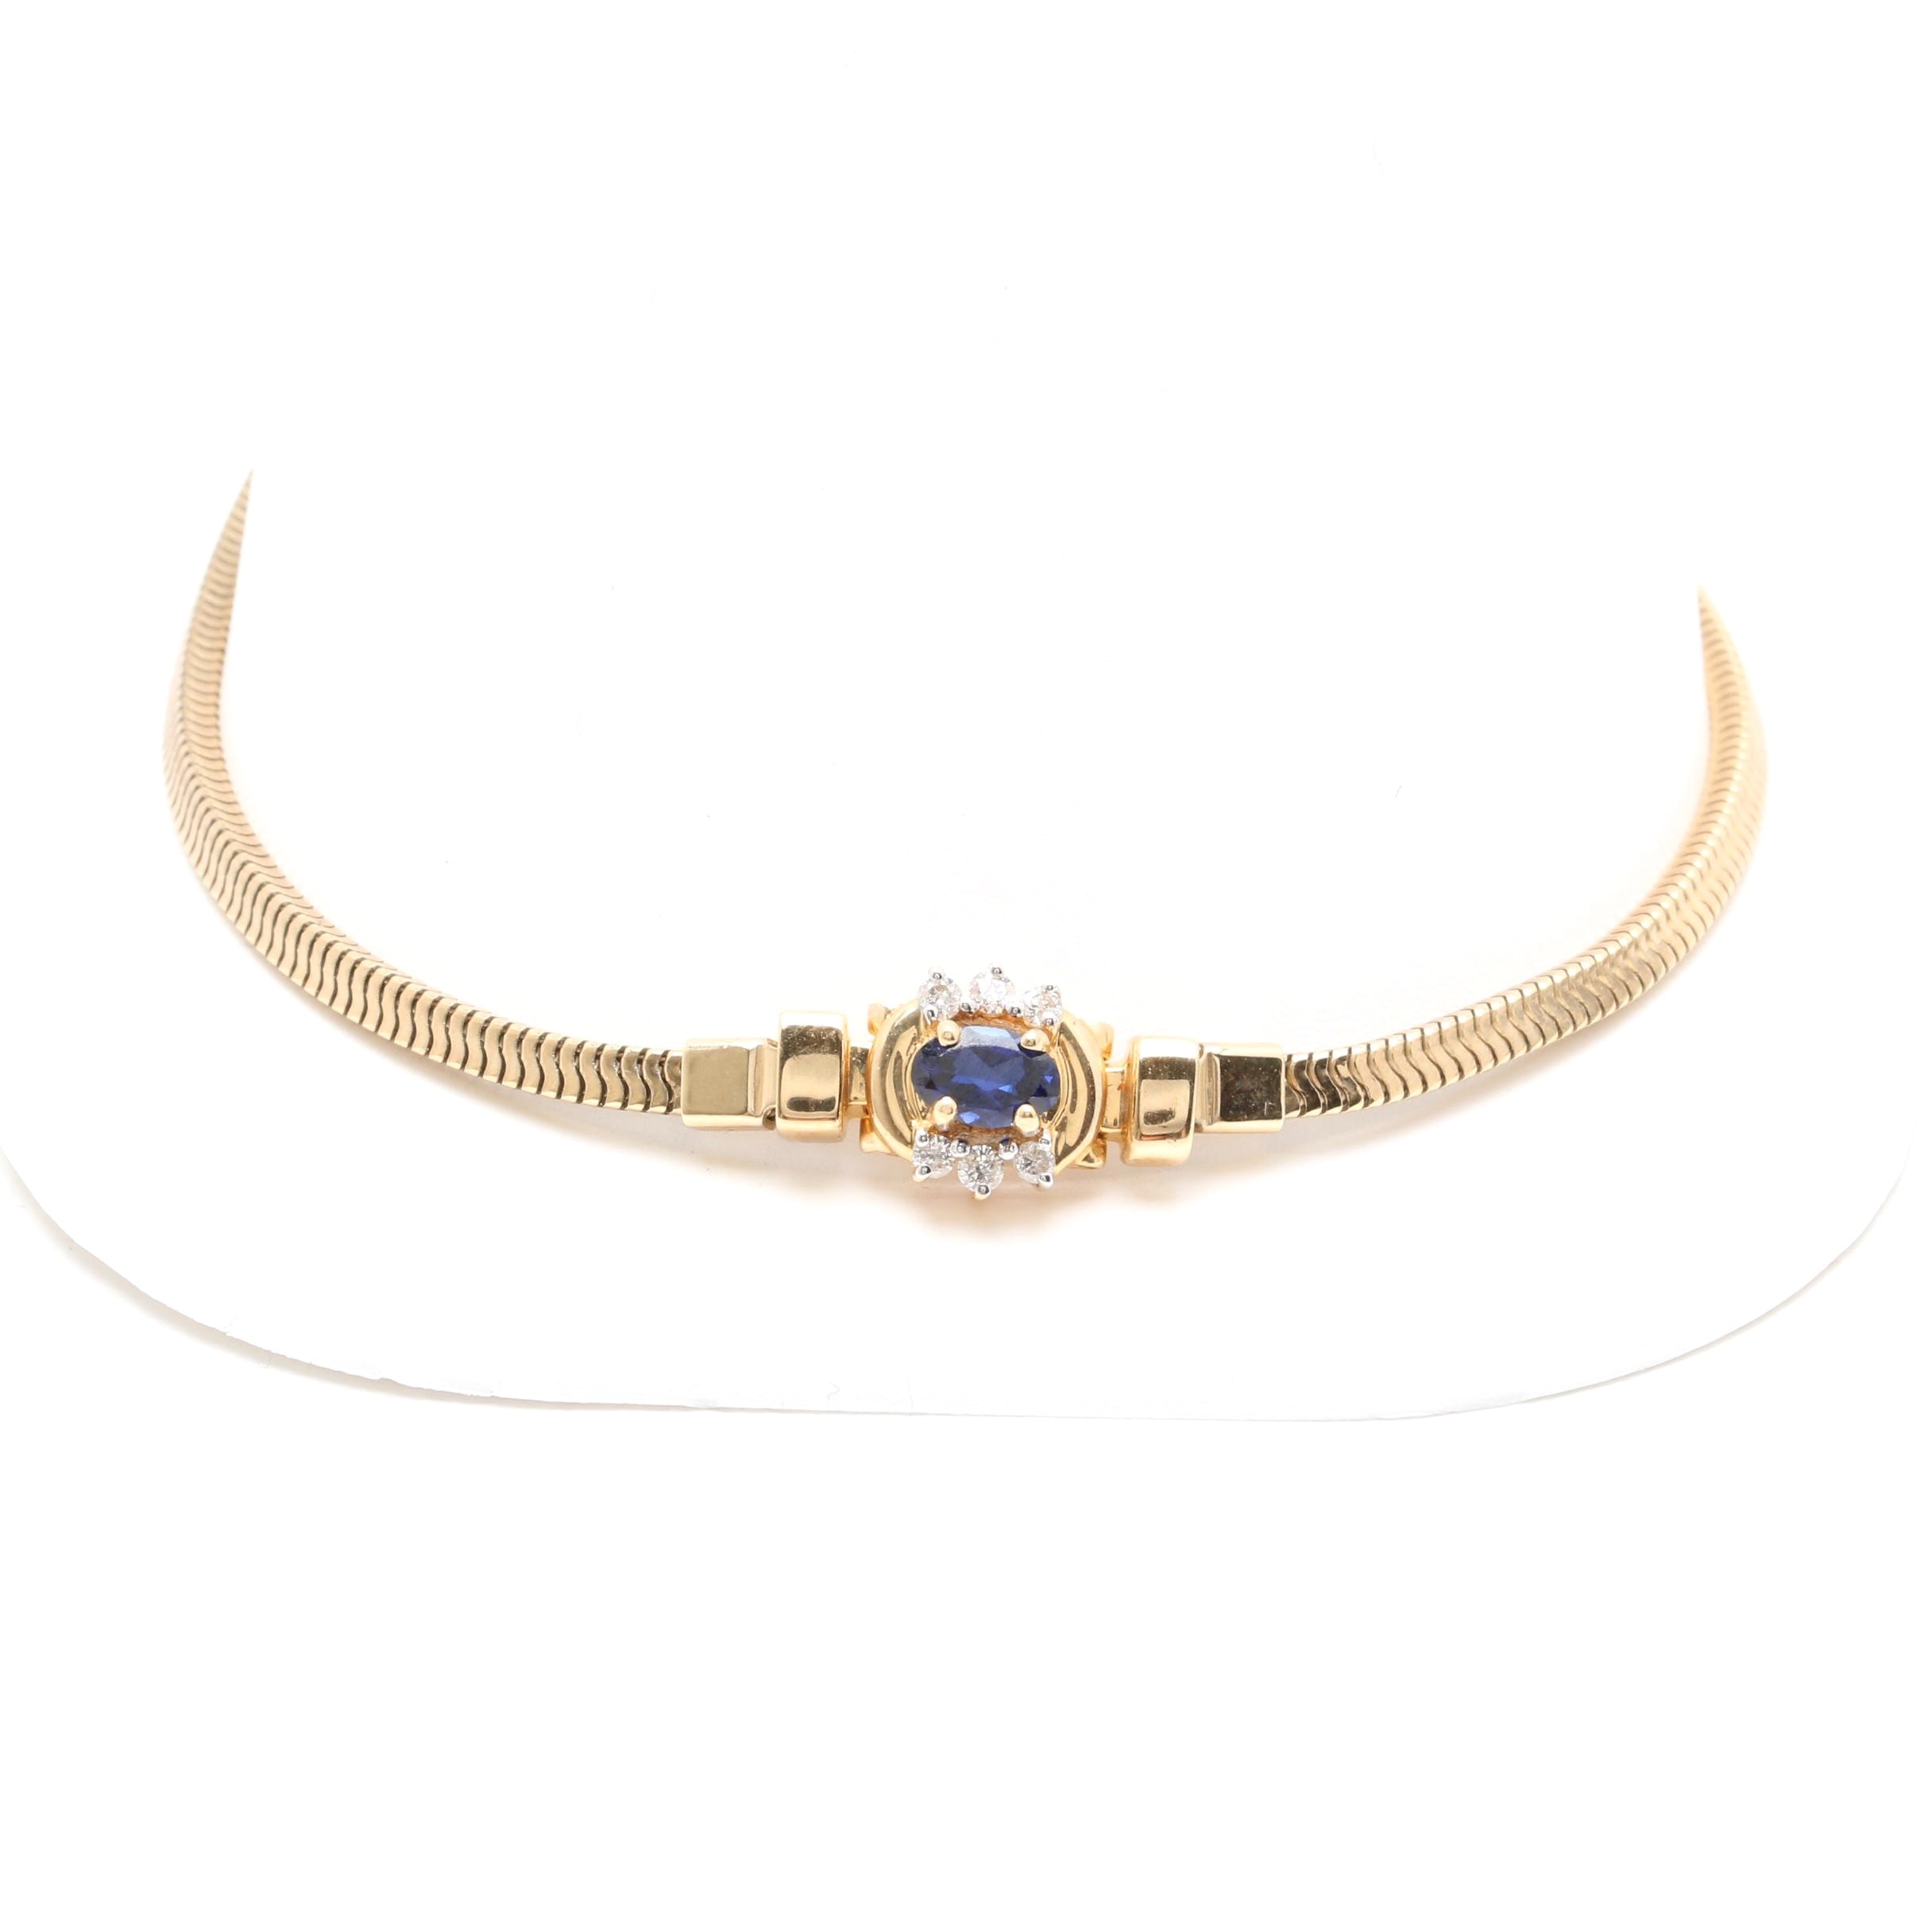 14K Yellow Gold and Gold Filled Synthetic Blue Sapphire and Diamond Bracelet